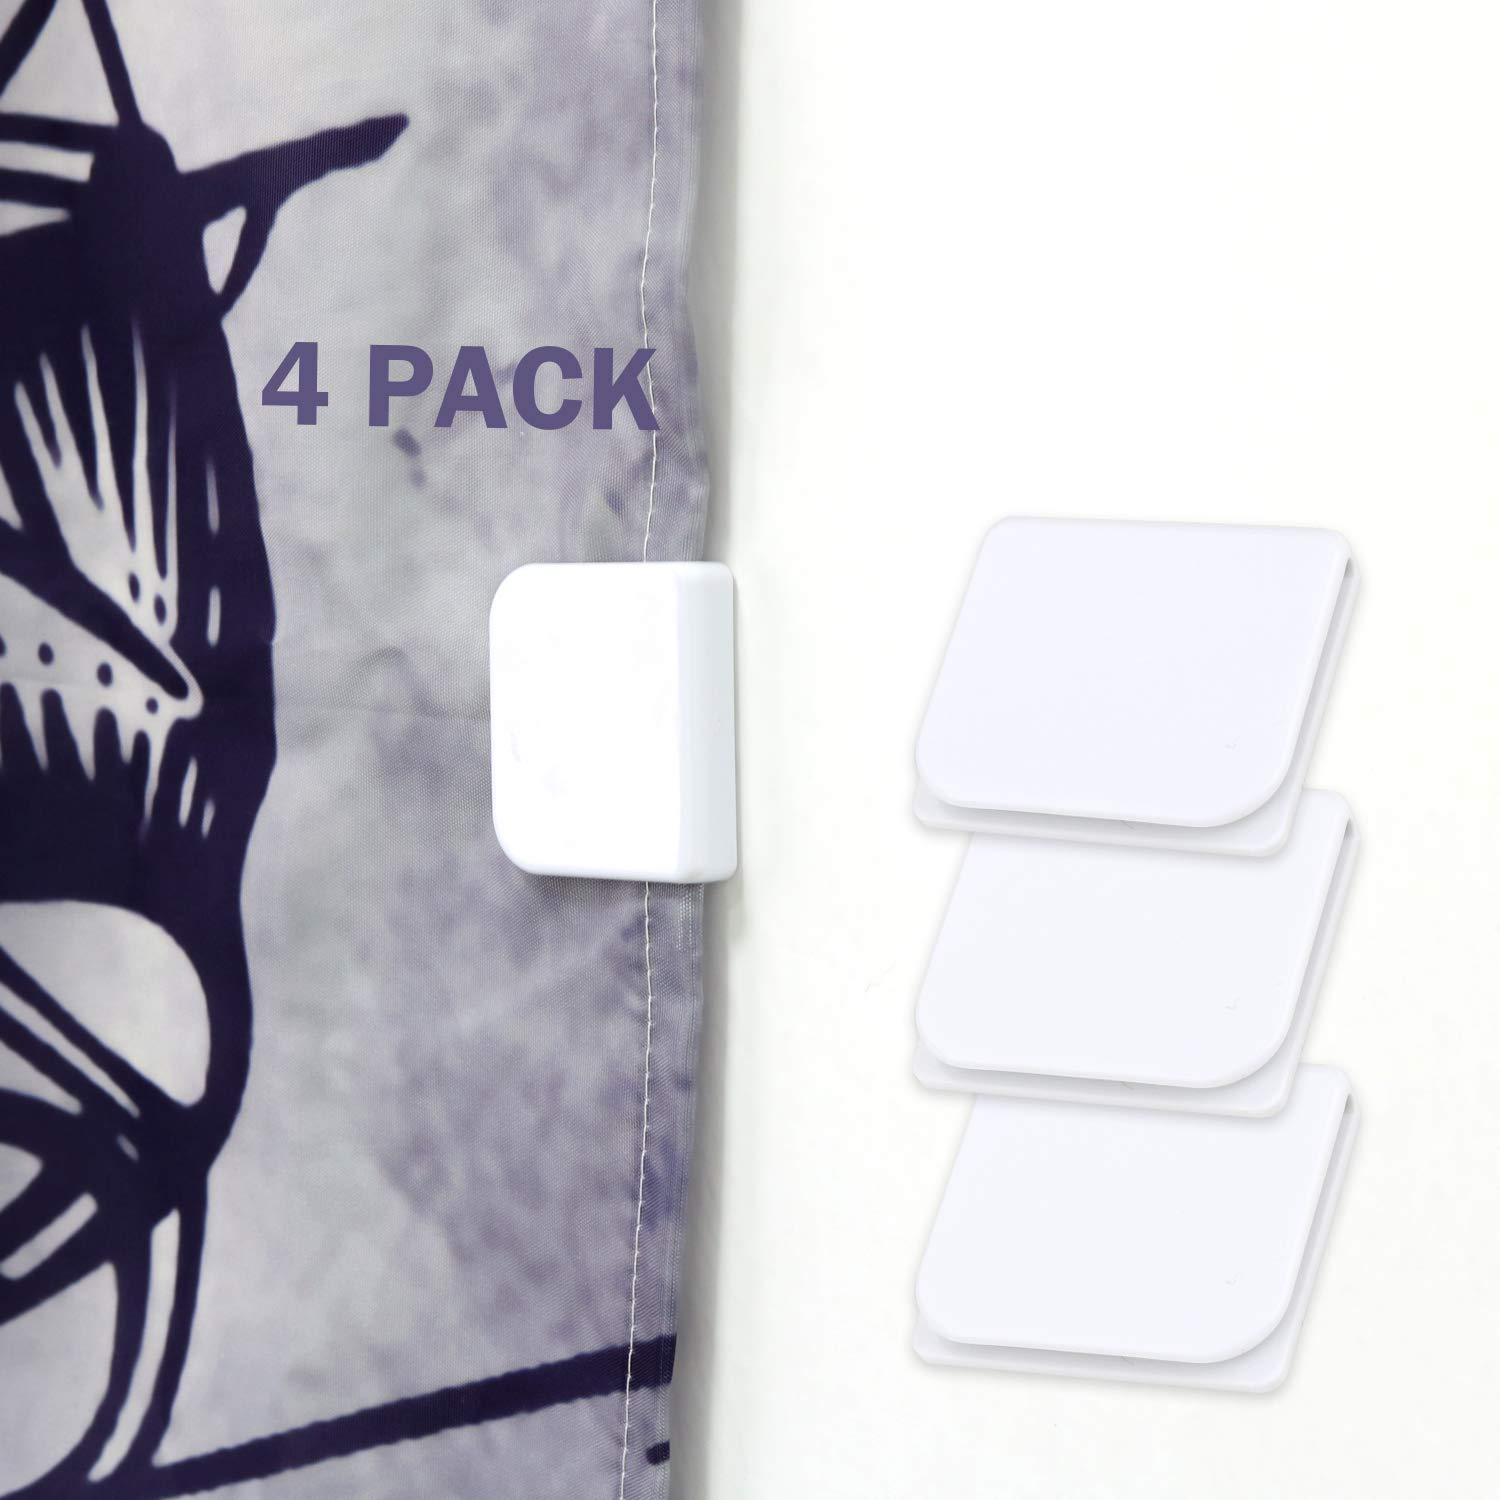 Shower Curtain Clips, Wimaha 4 Pack Shower Splash Guard Self Adhesive Windproof Stop Protect Clips, White by Wimaha